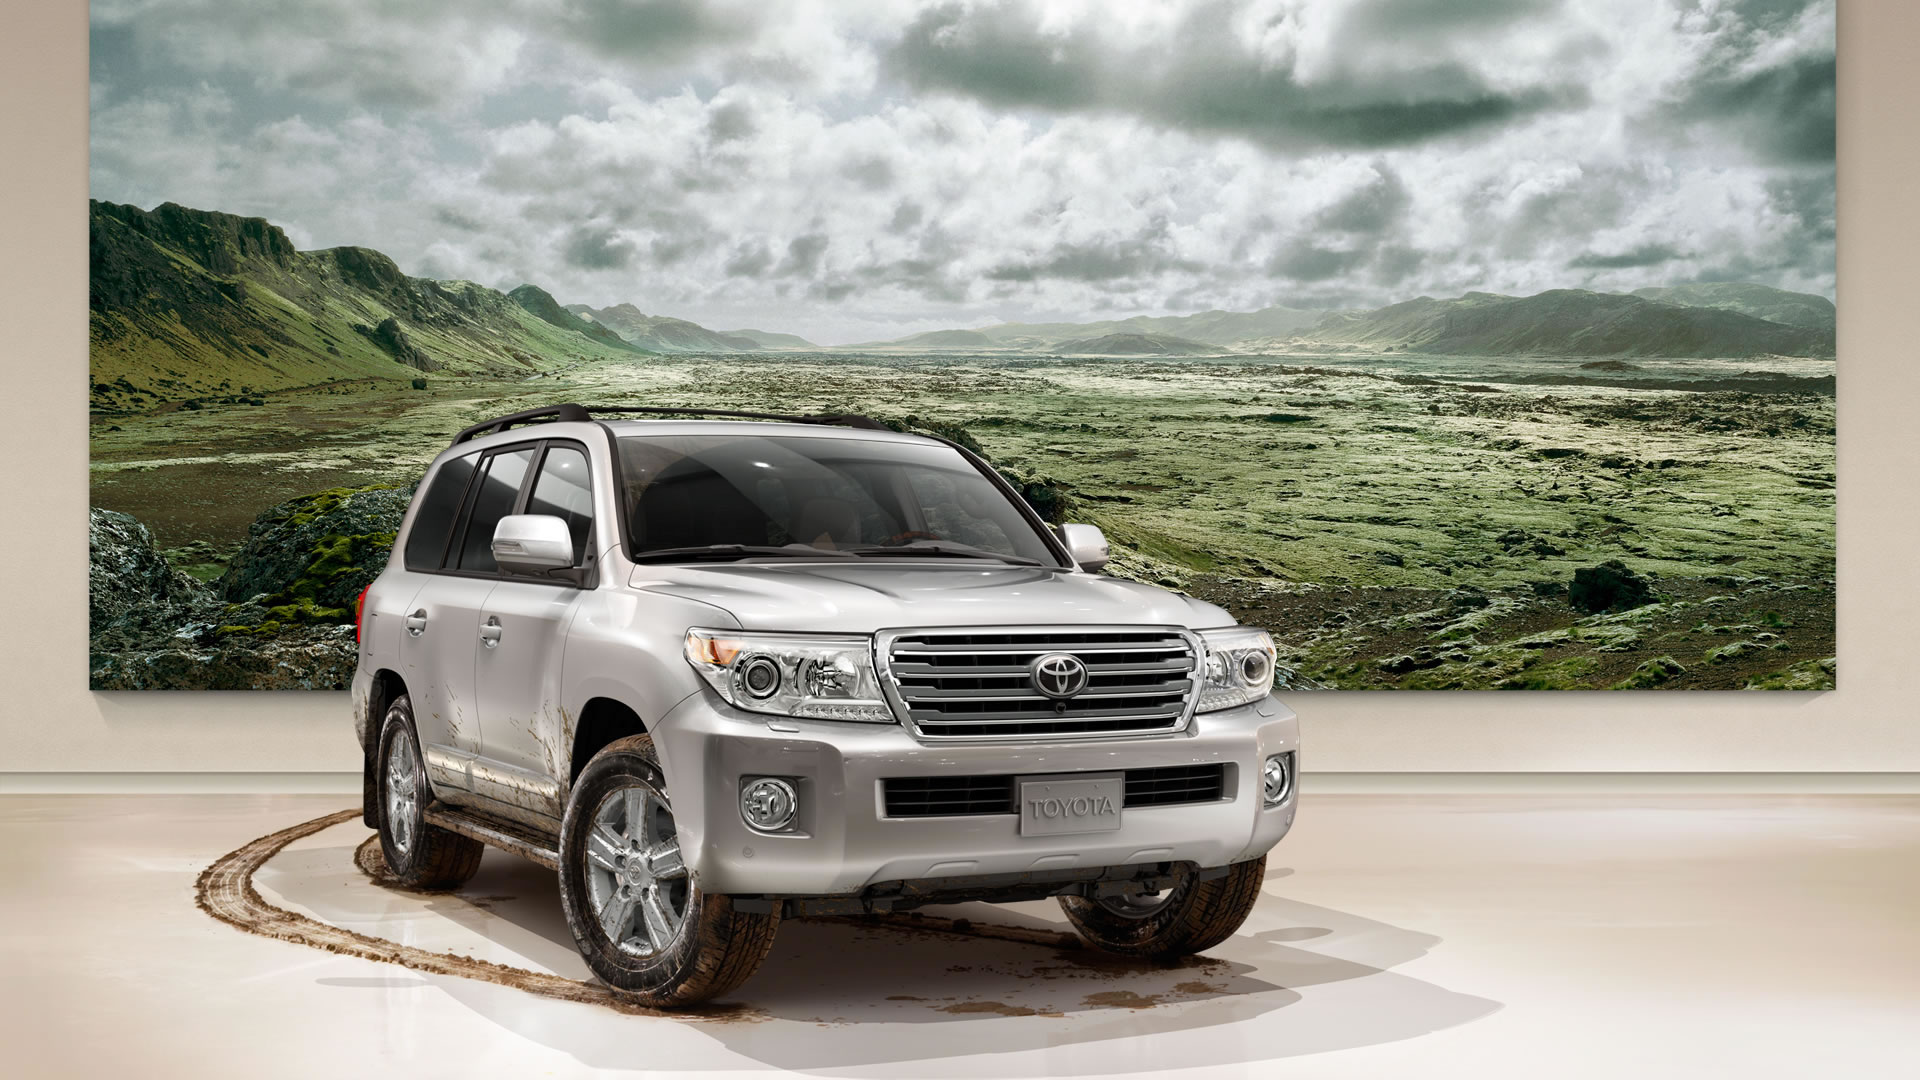 Sienna Hybrid >> 2014 Toyota Land Cruiser road trip accessories